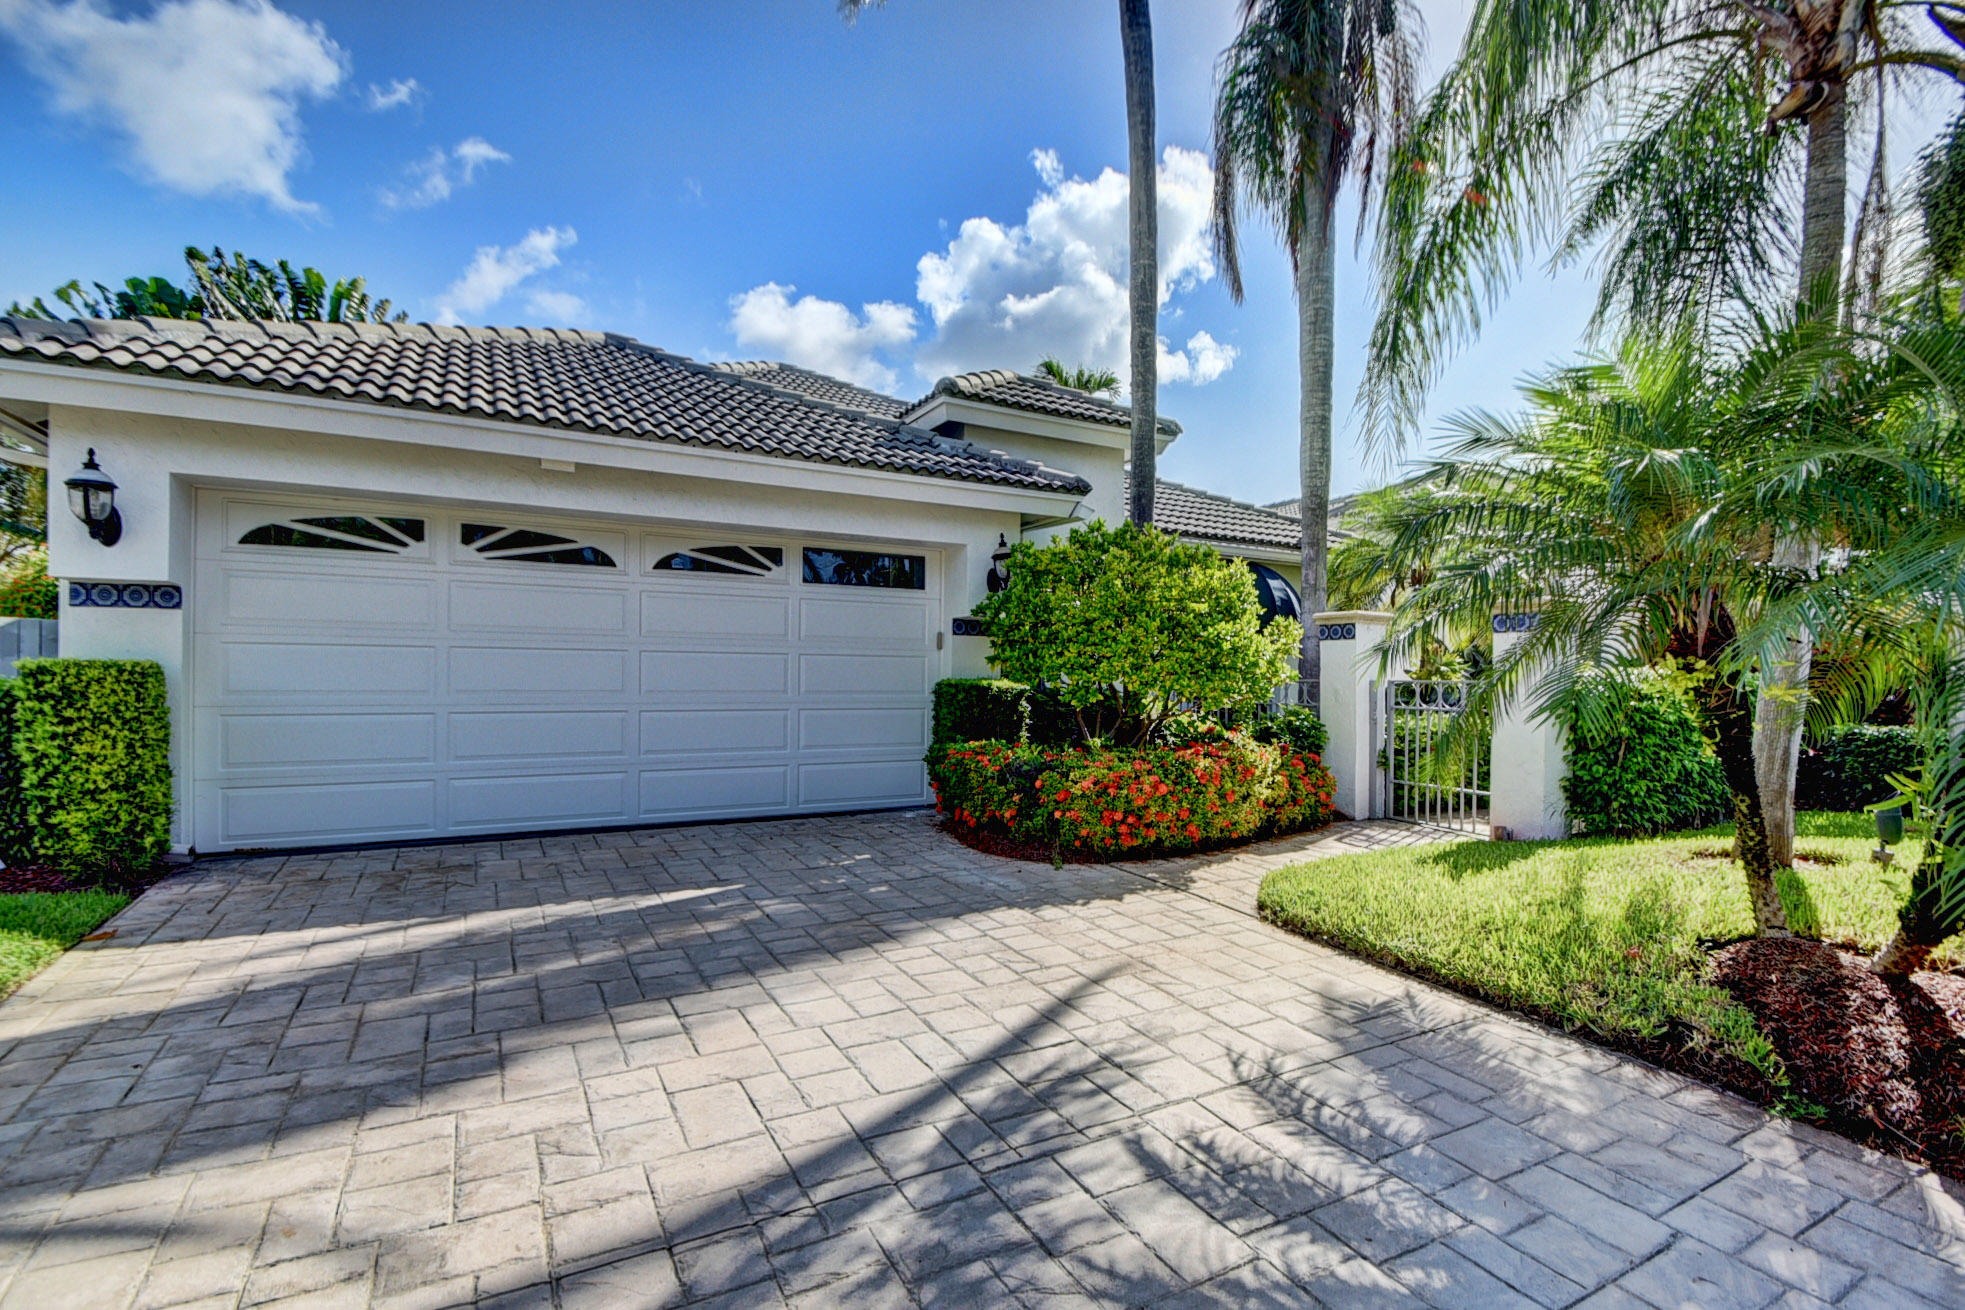 2140 NW 60TH CIRCLE, BOCA RATON, FL 33496